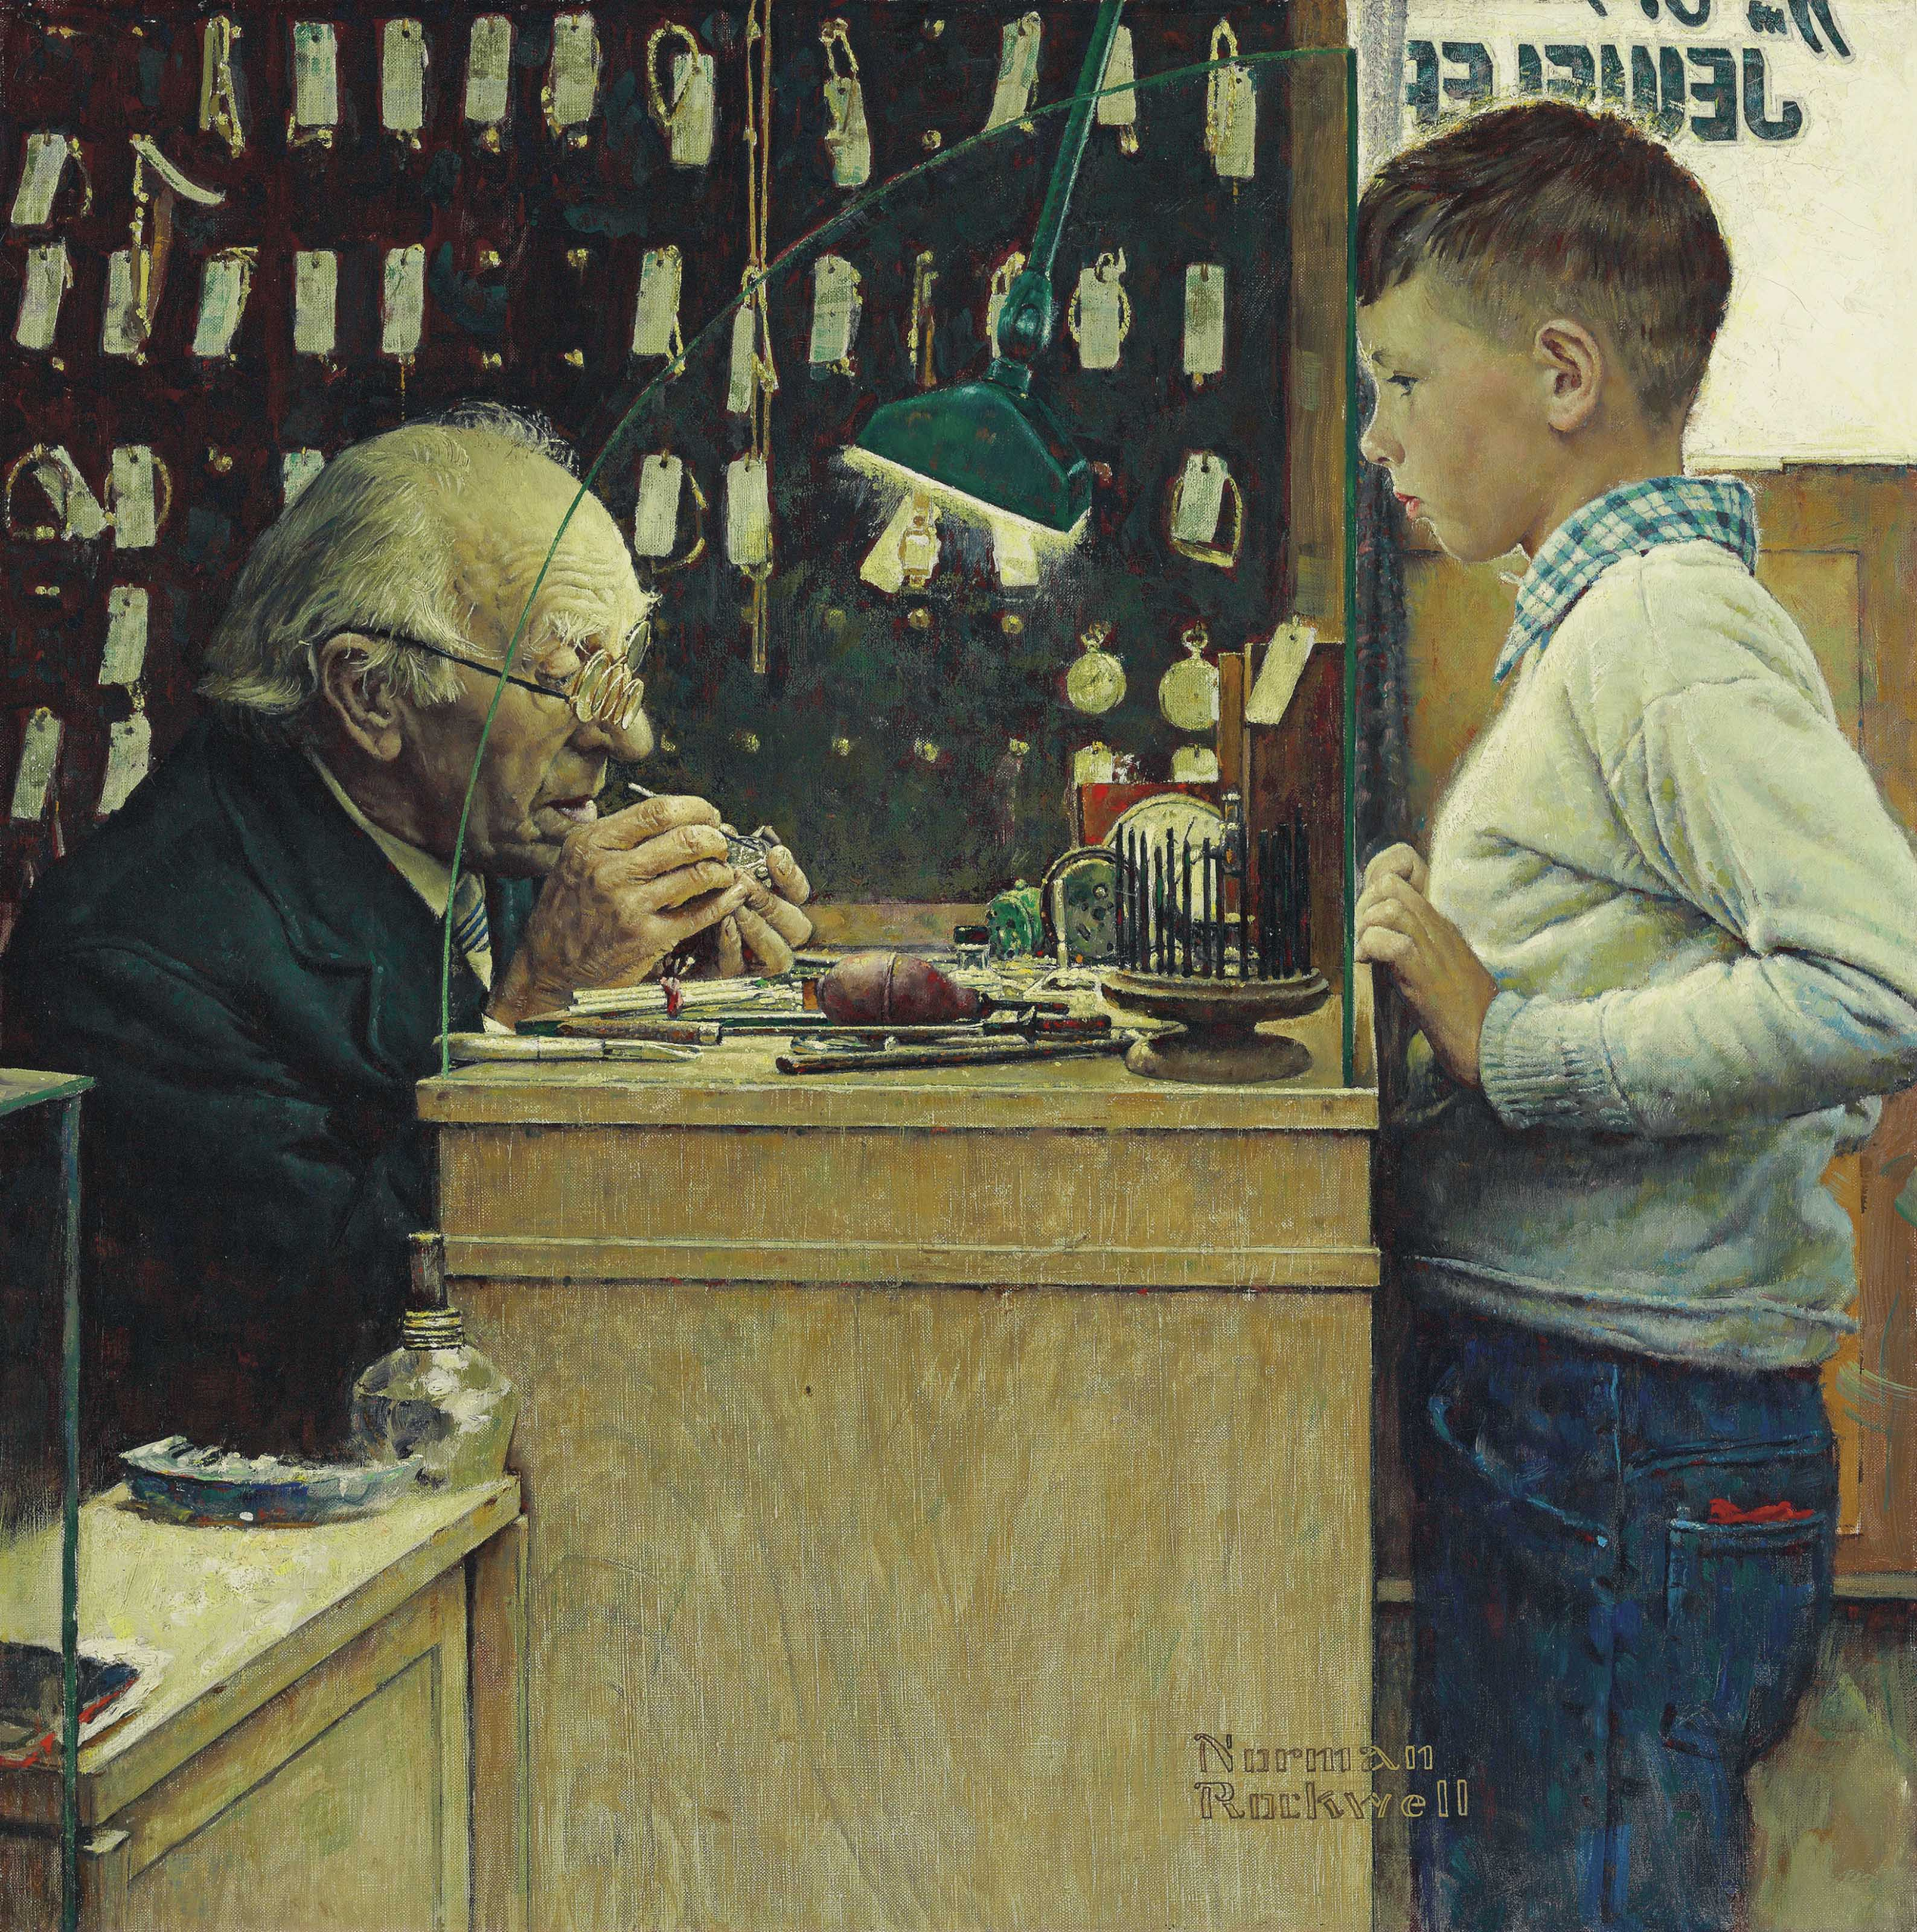 Norman Rockwell (1894-1978)